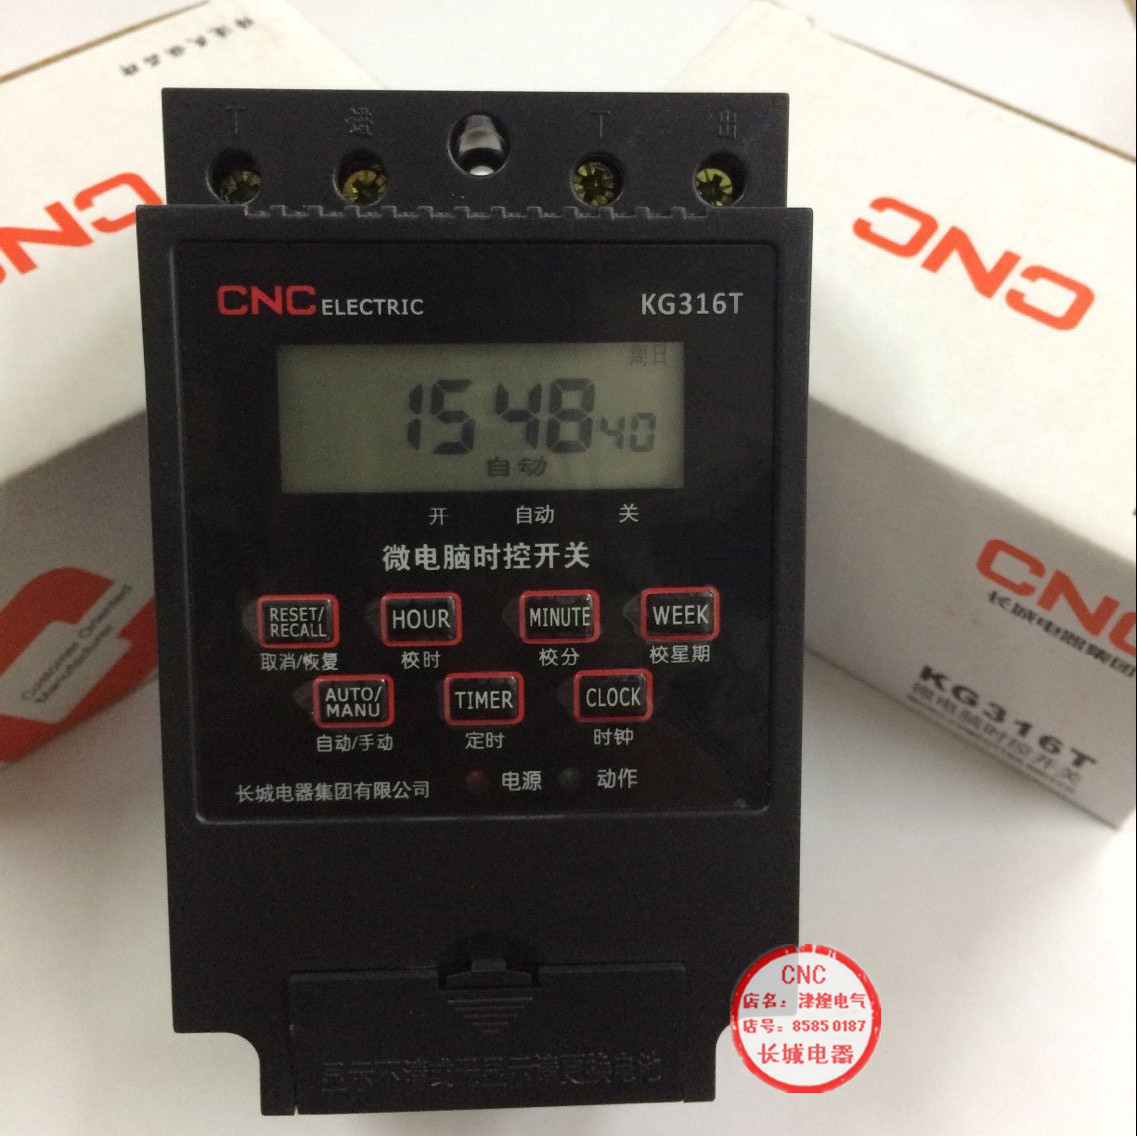 Cnc Great Wall Group Kg316t Microcomputer Time Control Switch